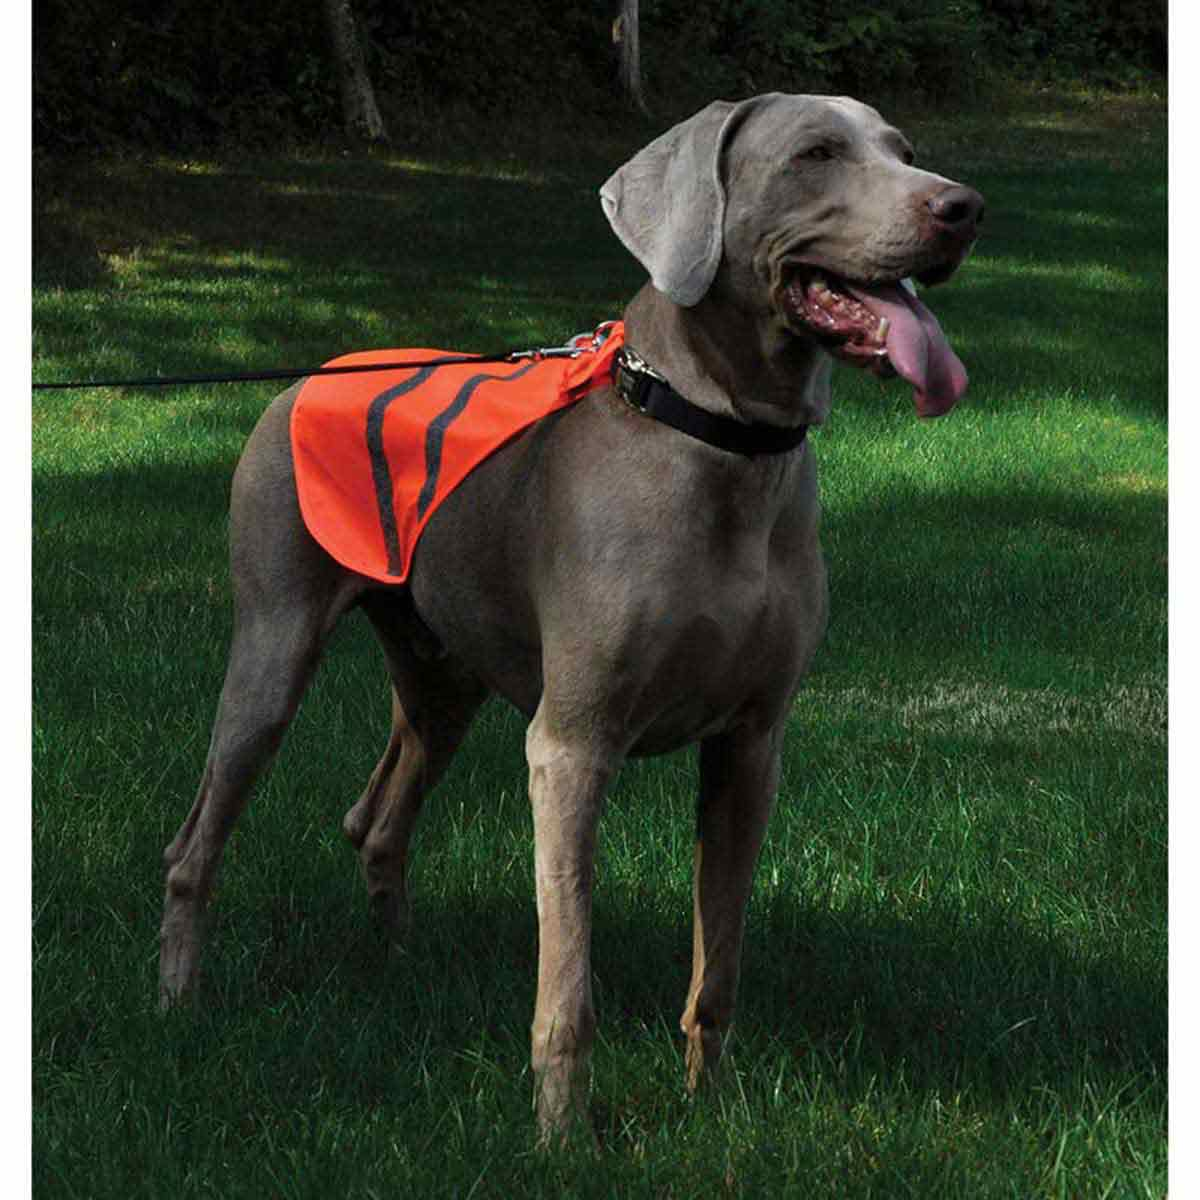 Coastal Reflective Safety Vest Large- For Dogs over 50 lbs